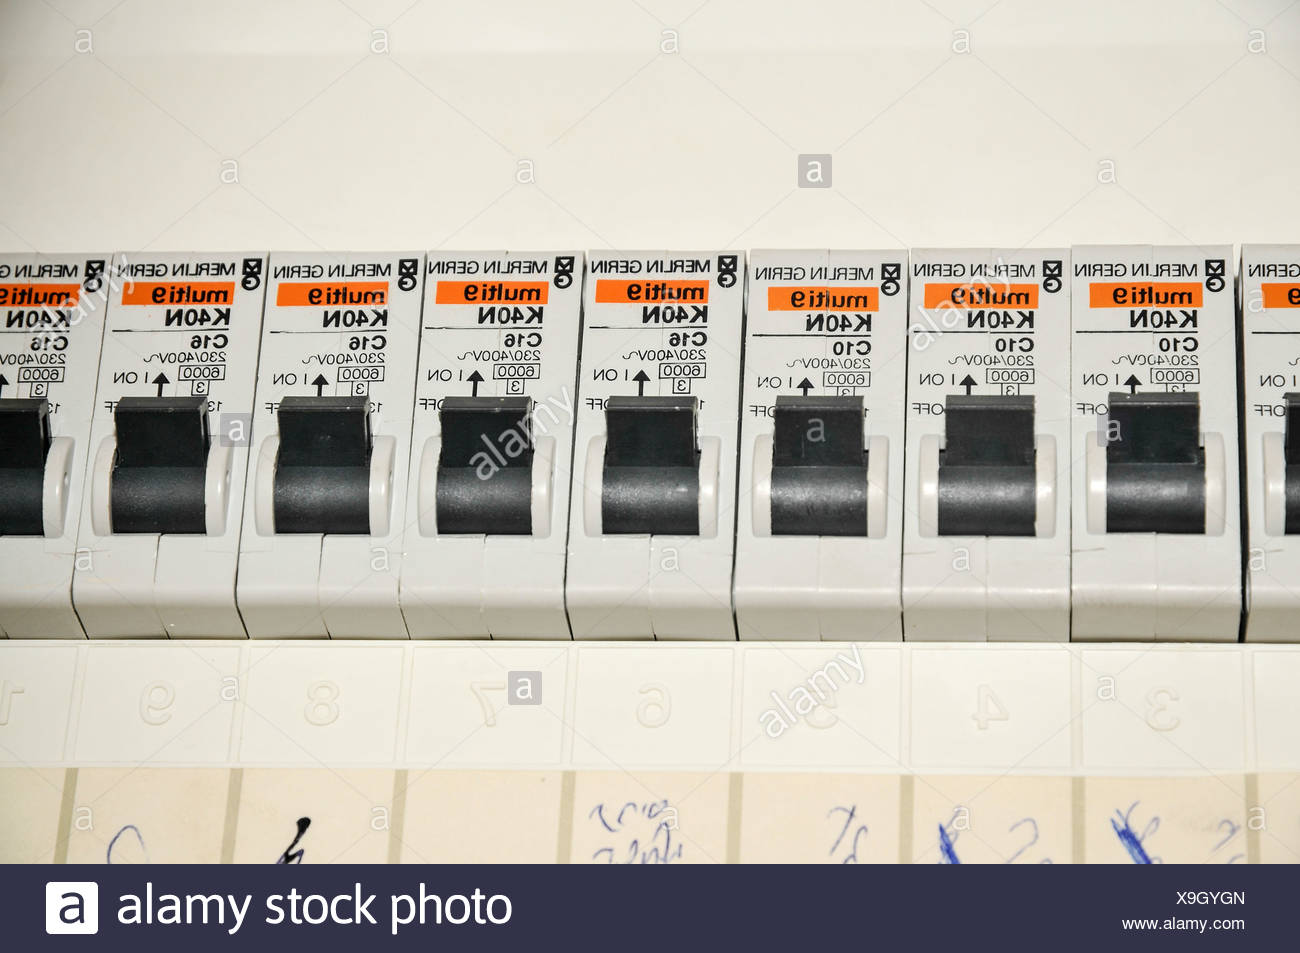 Fuse Box Household Stockfotos & Fuse Box Household Bilder - Alamy